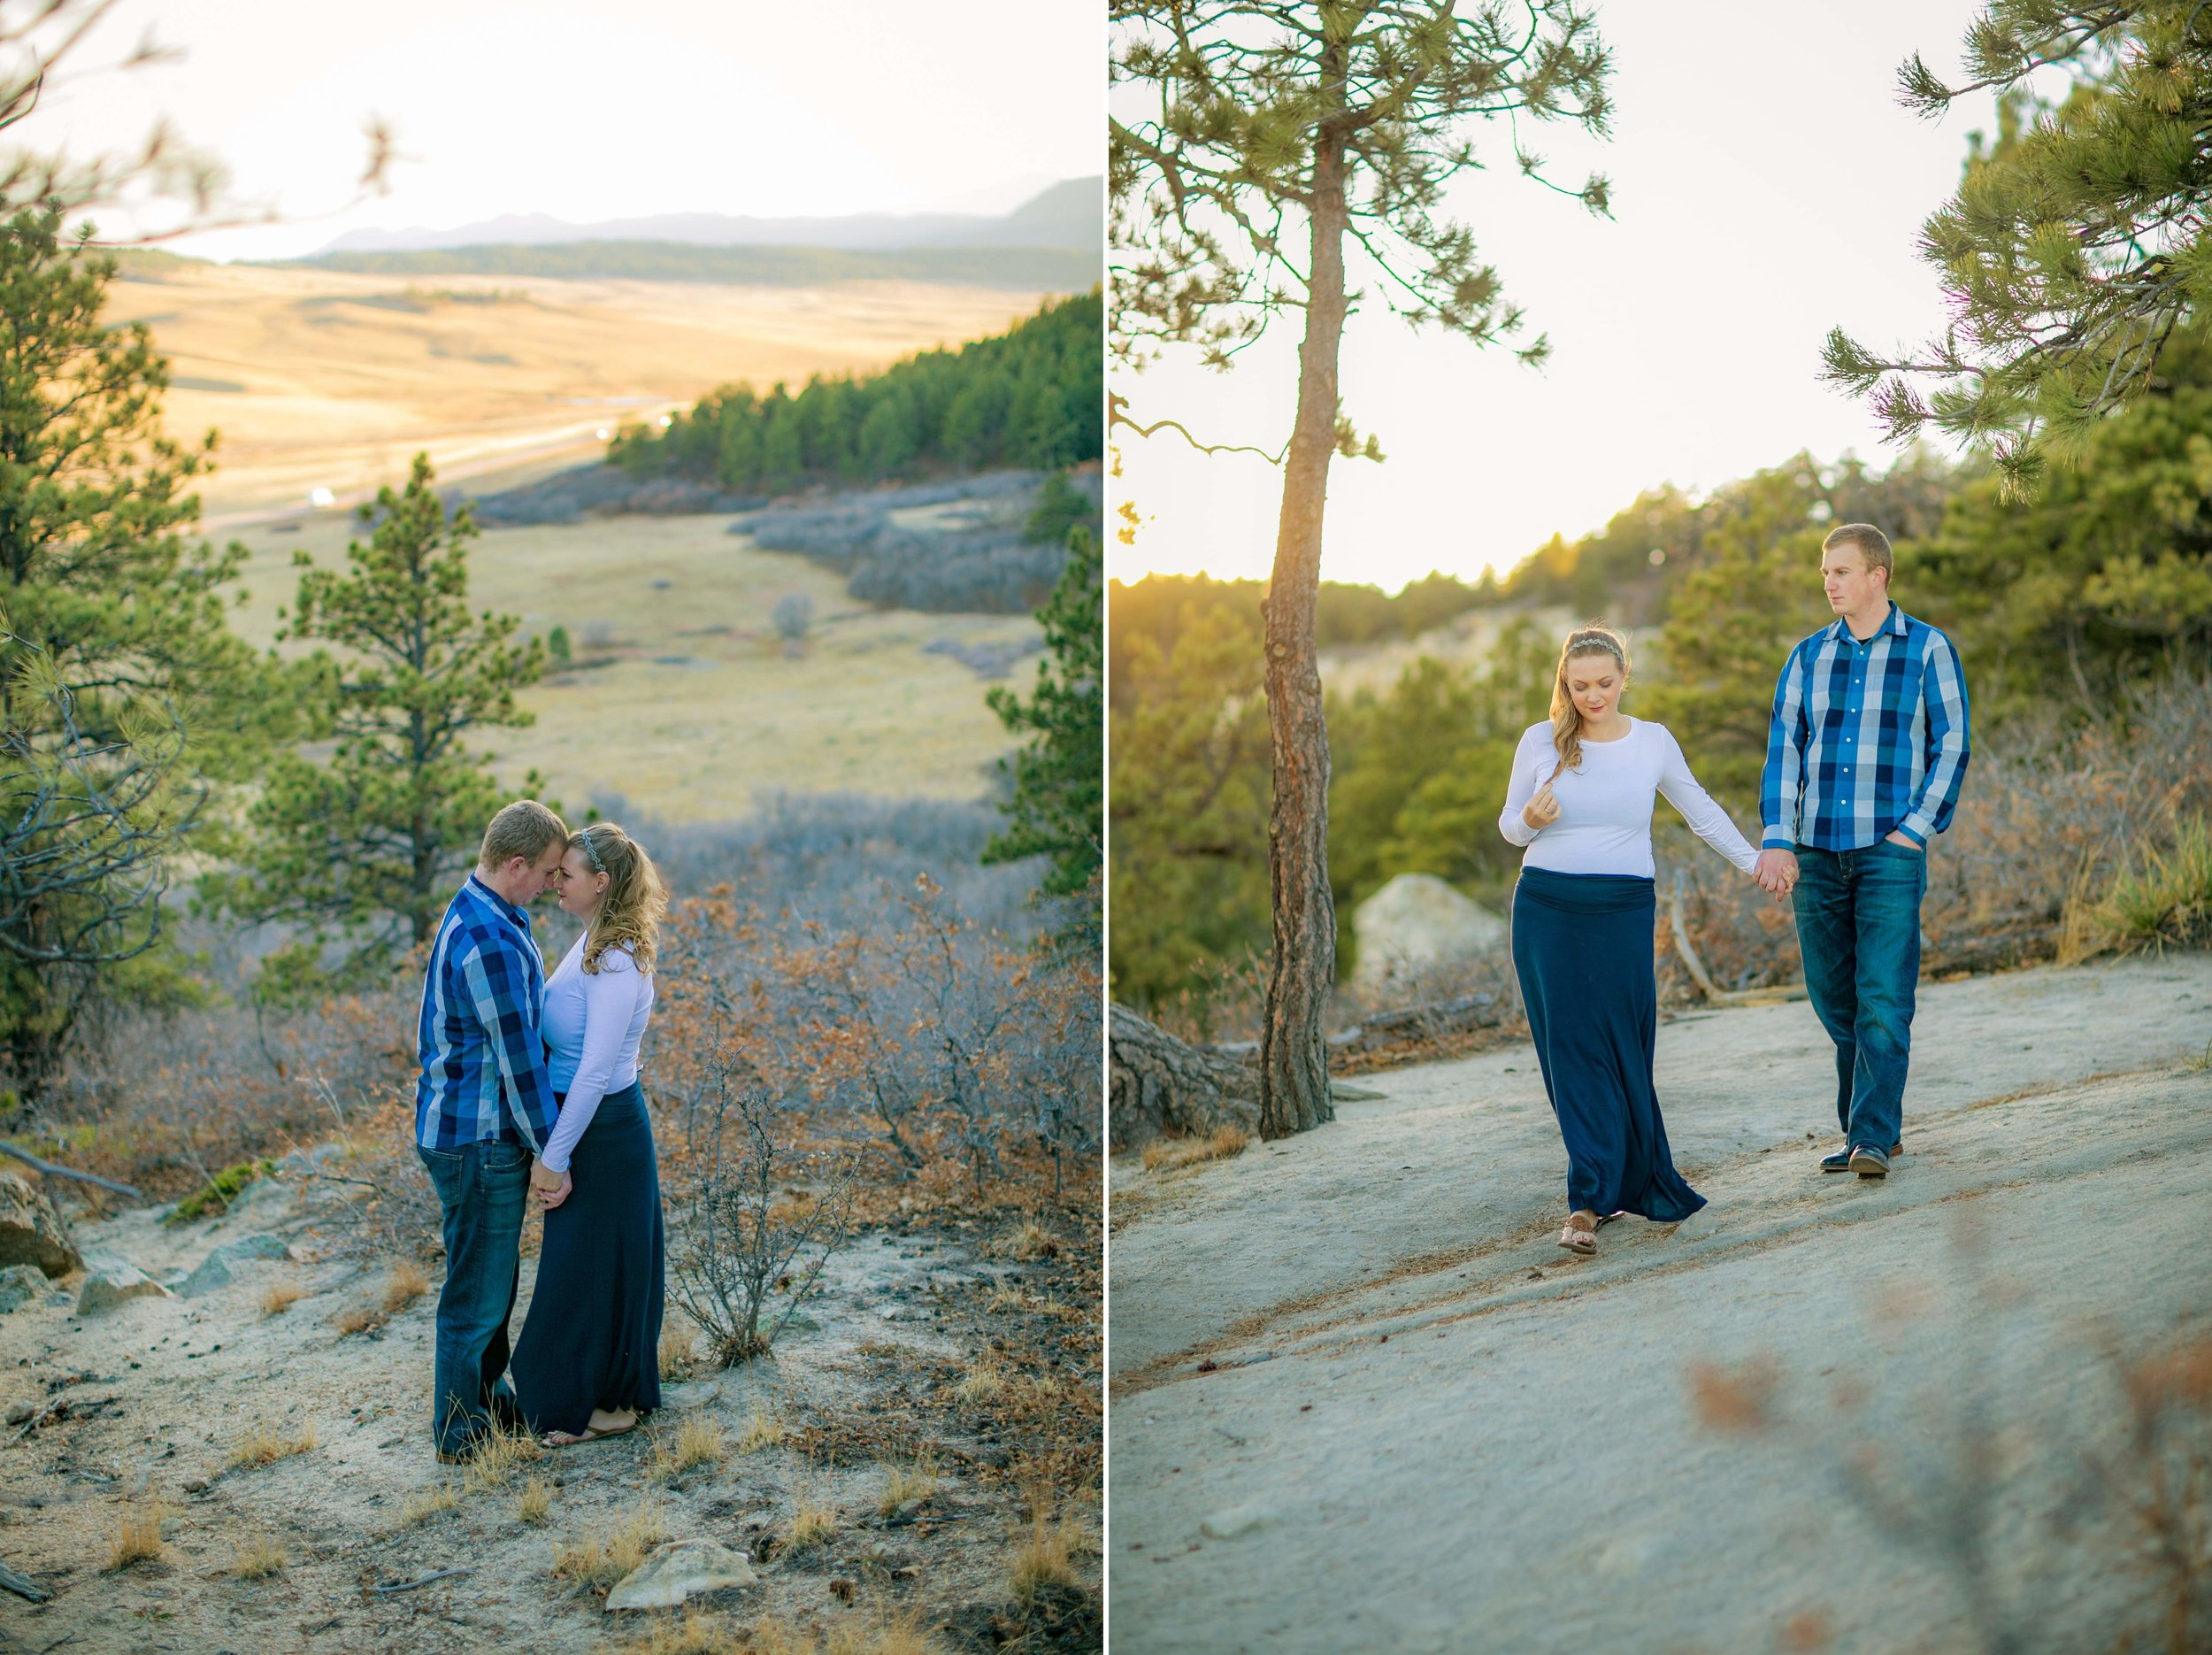 _coloradoweddingphotographer_sprucemountainopenspace_www.kisaconrad.com_20171113-607A8580 copy.jpeg